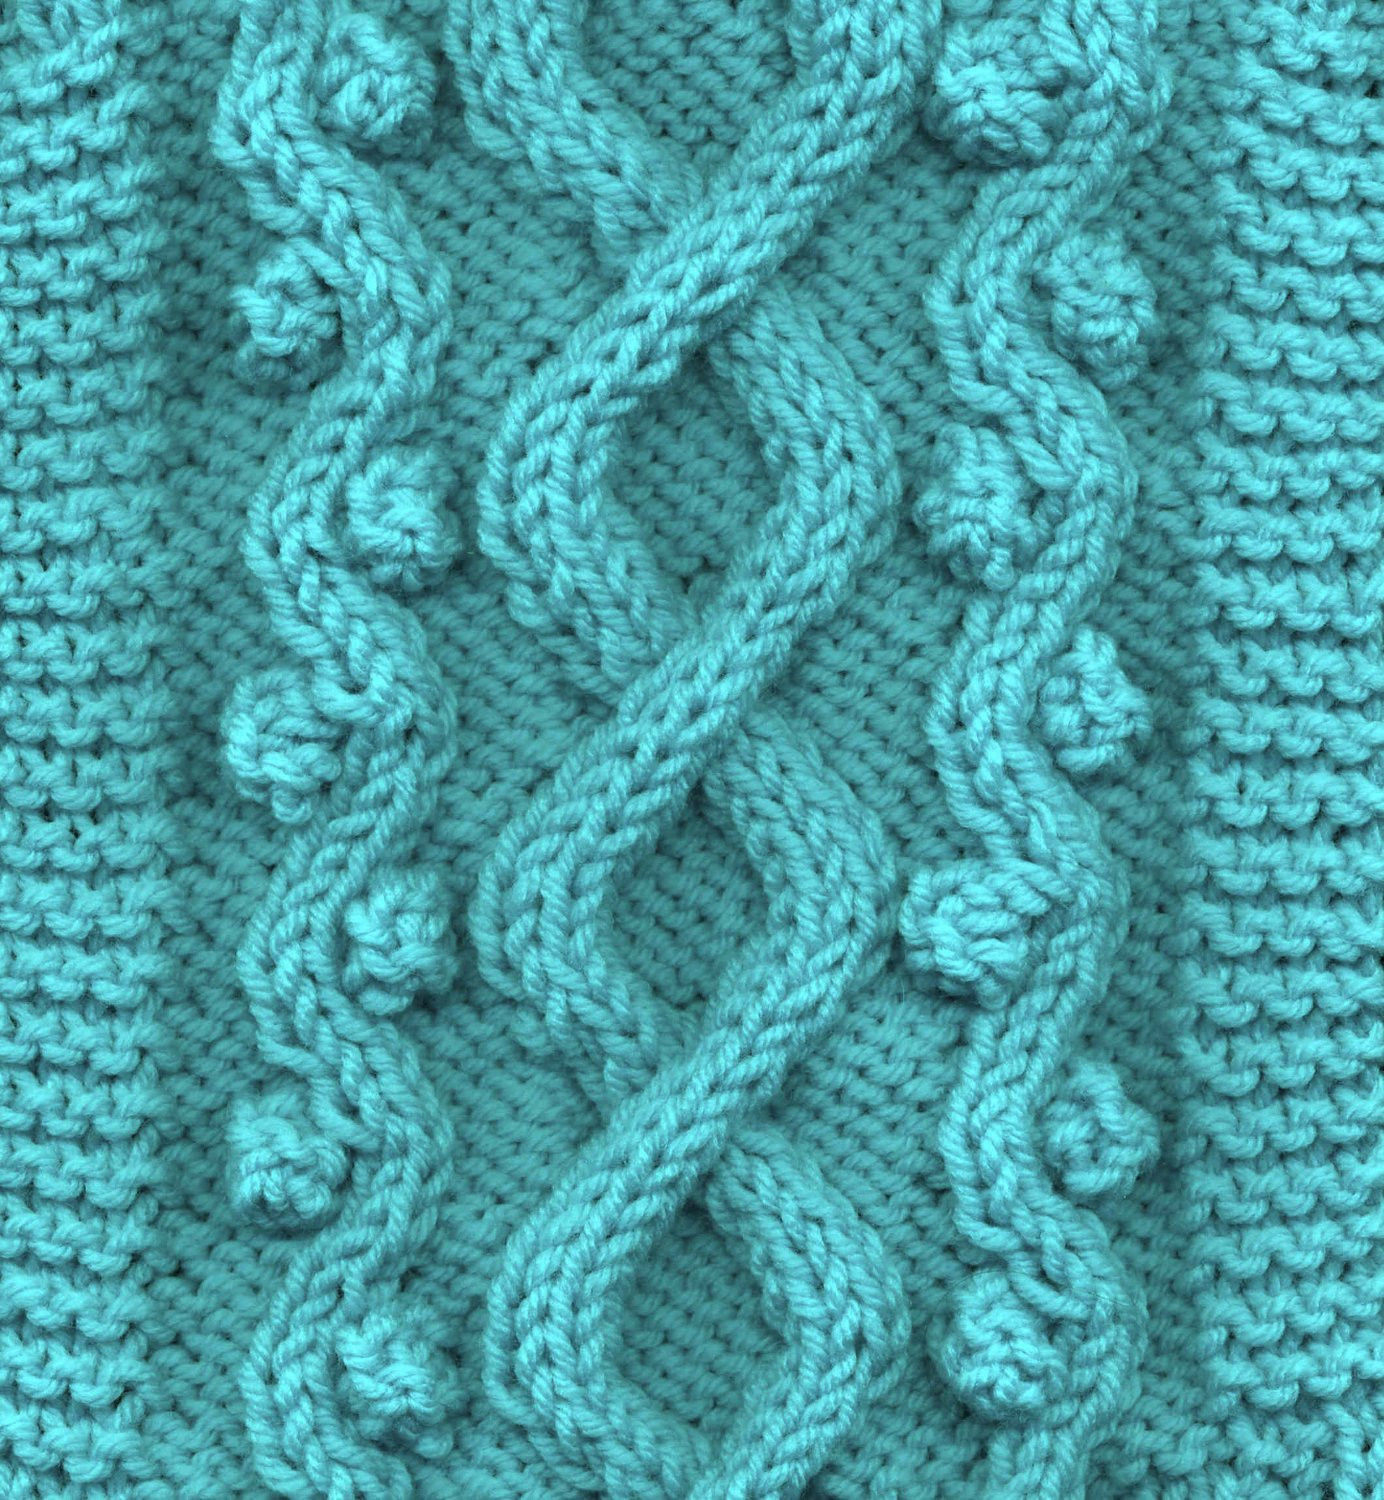 New Knitting Pattern Cable Sweater Free Patterns Knitting Design Of Incredible 42 Images Knitting Design